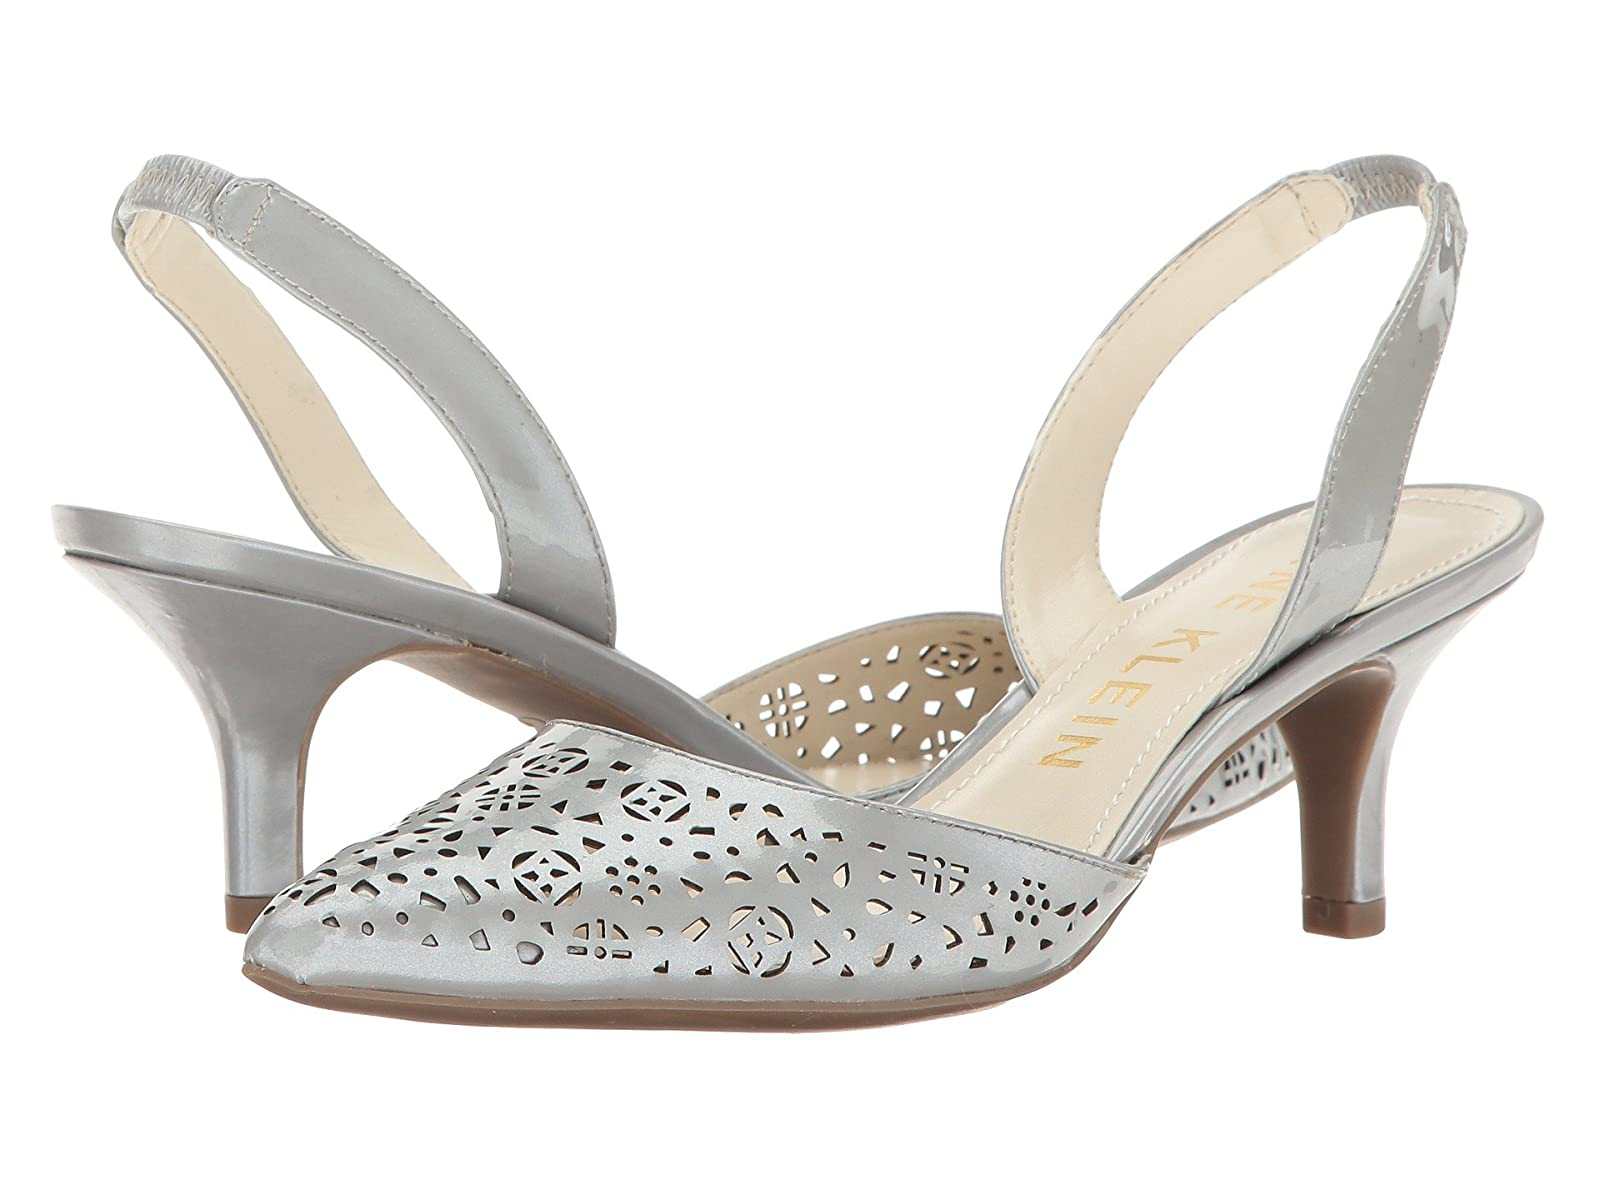 Anne Klein FabriziaCheap and distinctive eye-catching shoes